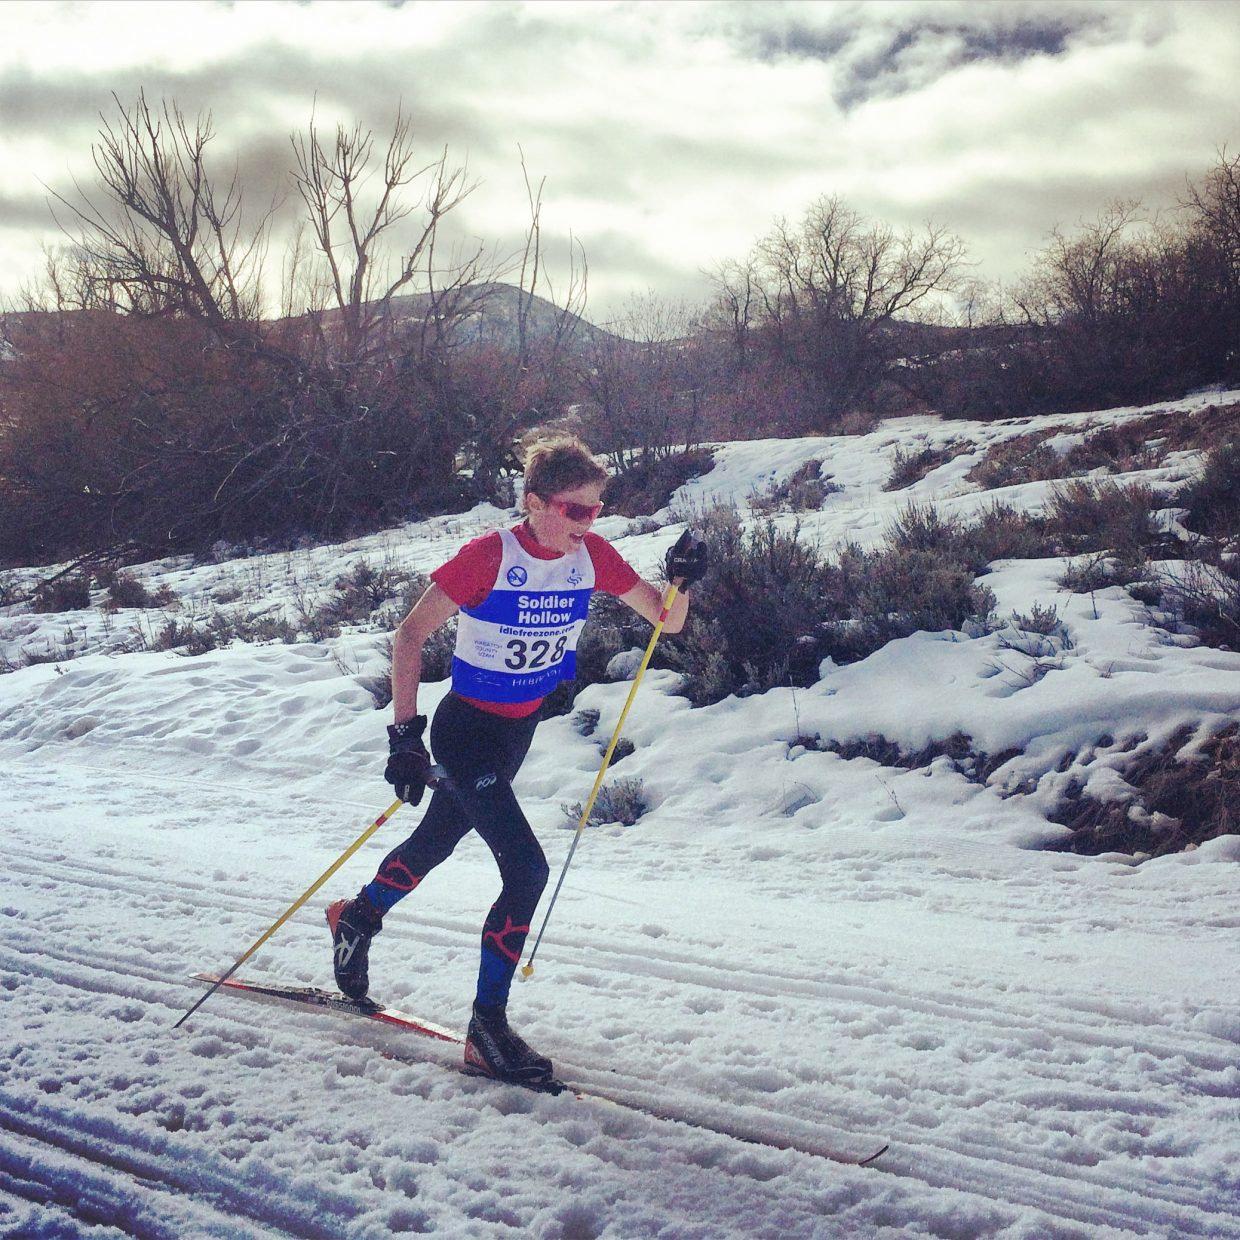 Simon Zink was 4th overall and won the u-18 category. Submitted by Josh Smullin.